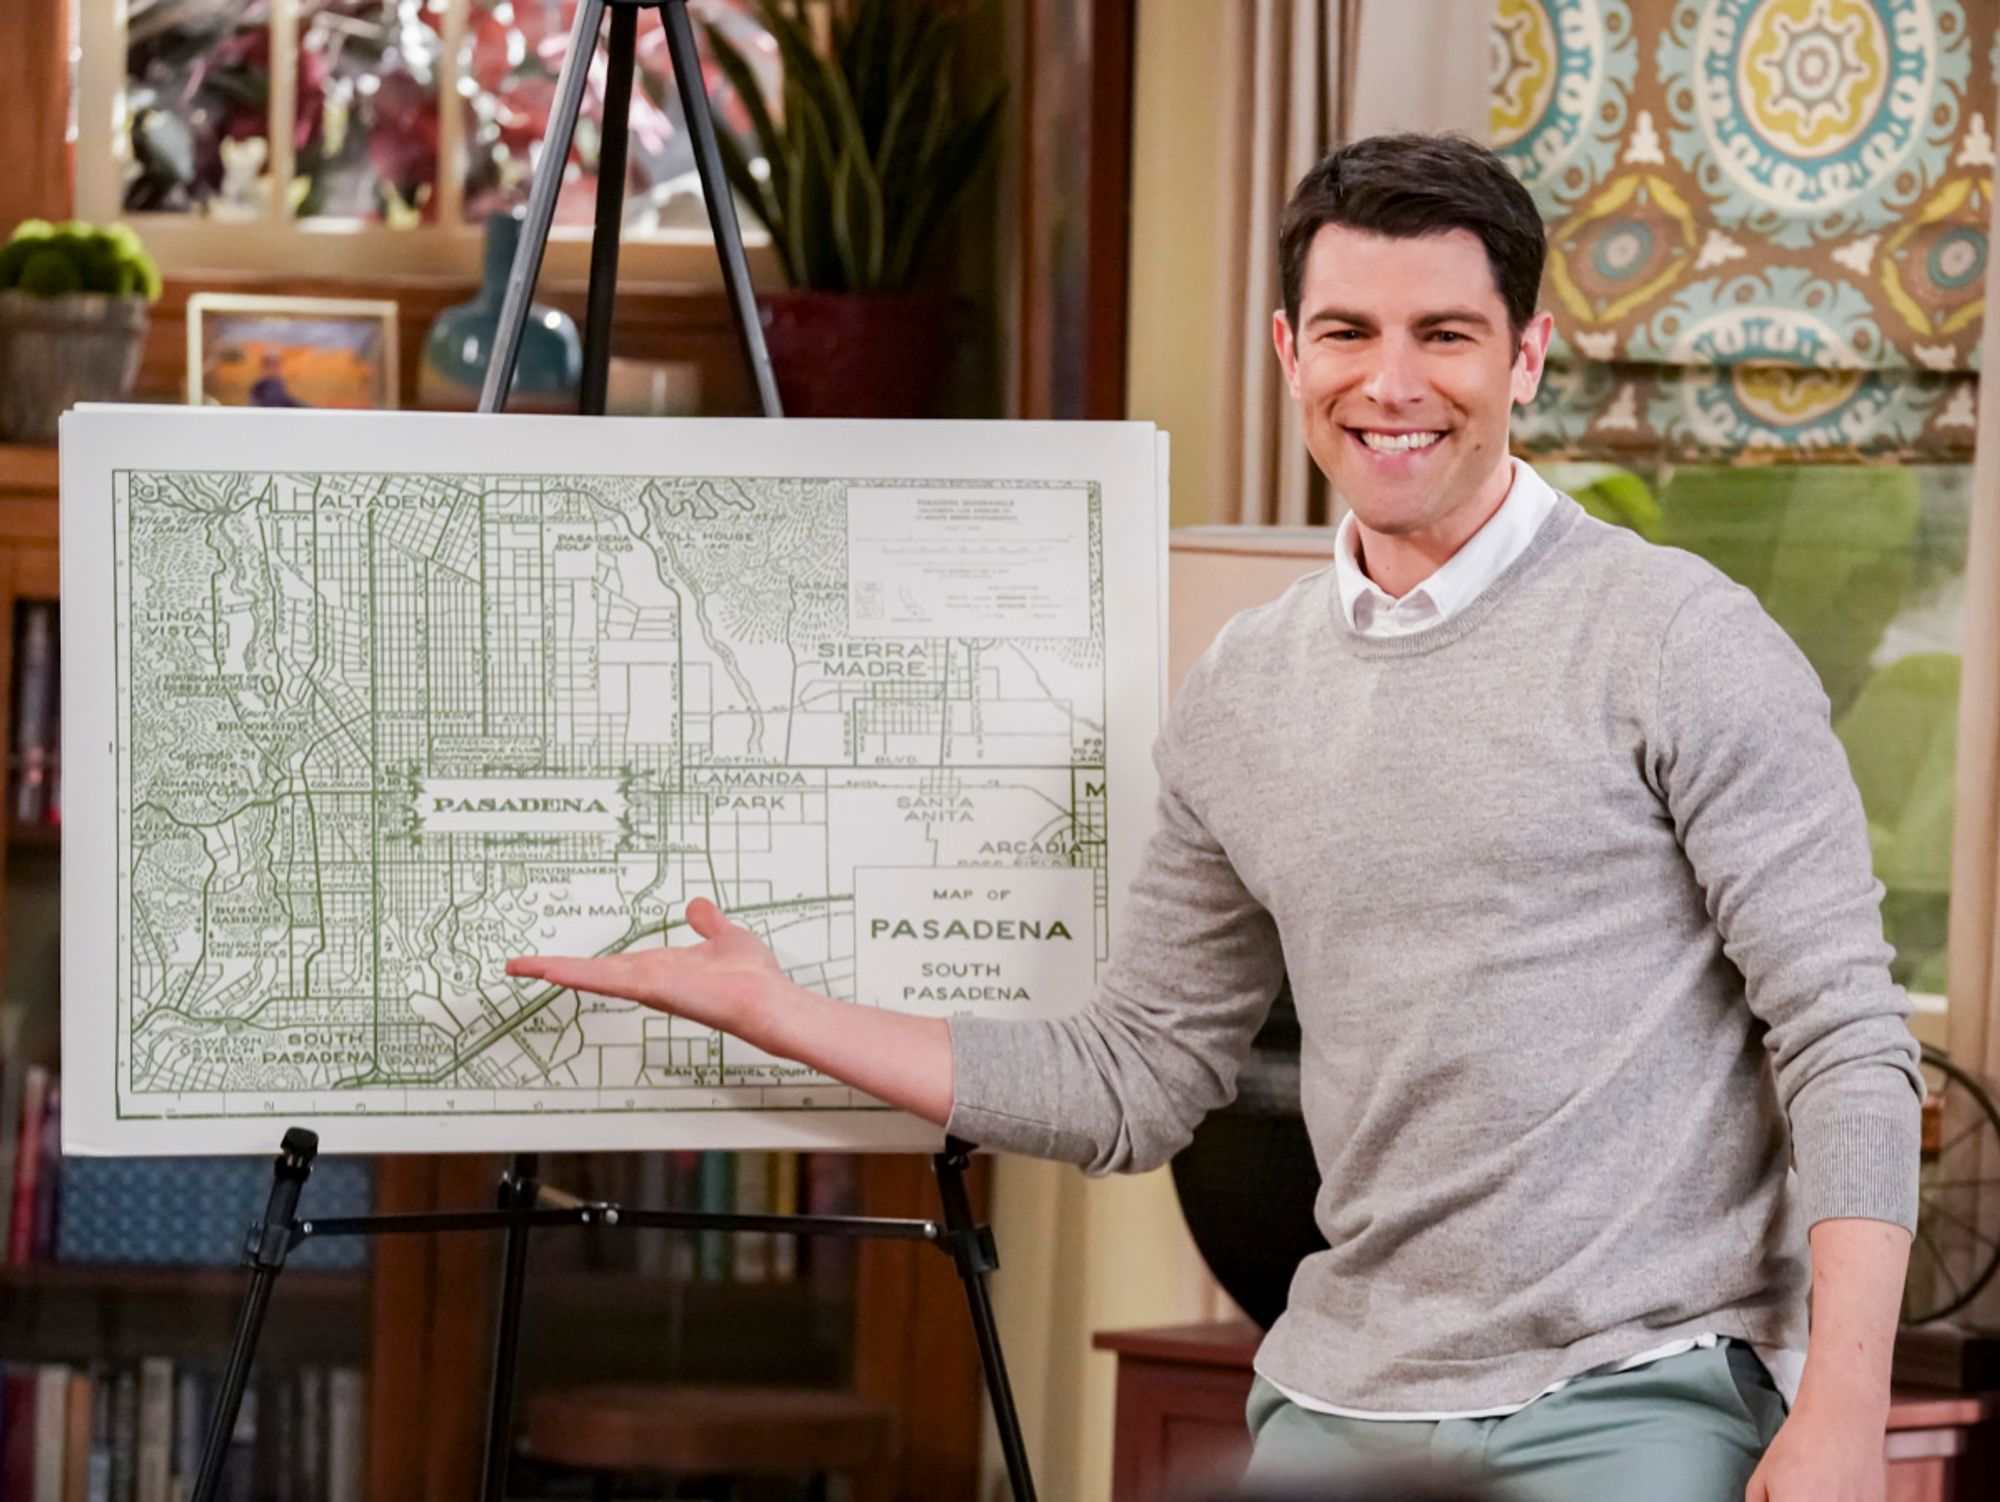 Max Greenfield in the TV show The Neighborhood.